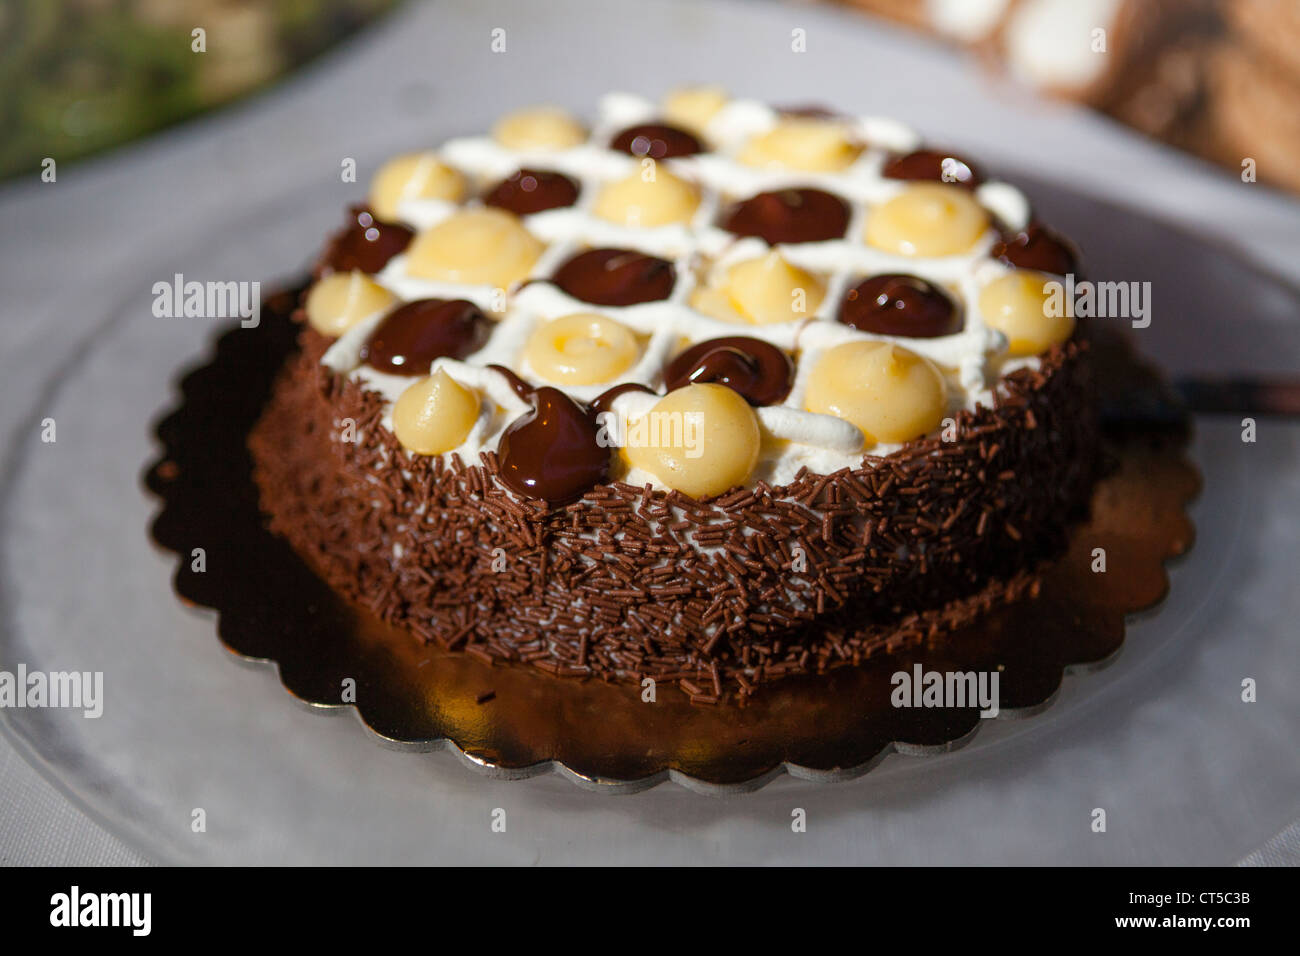 Chocolate cake on plate outdoors - Stock Image